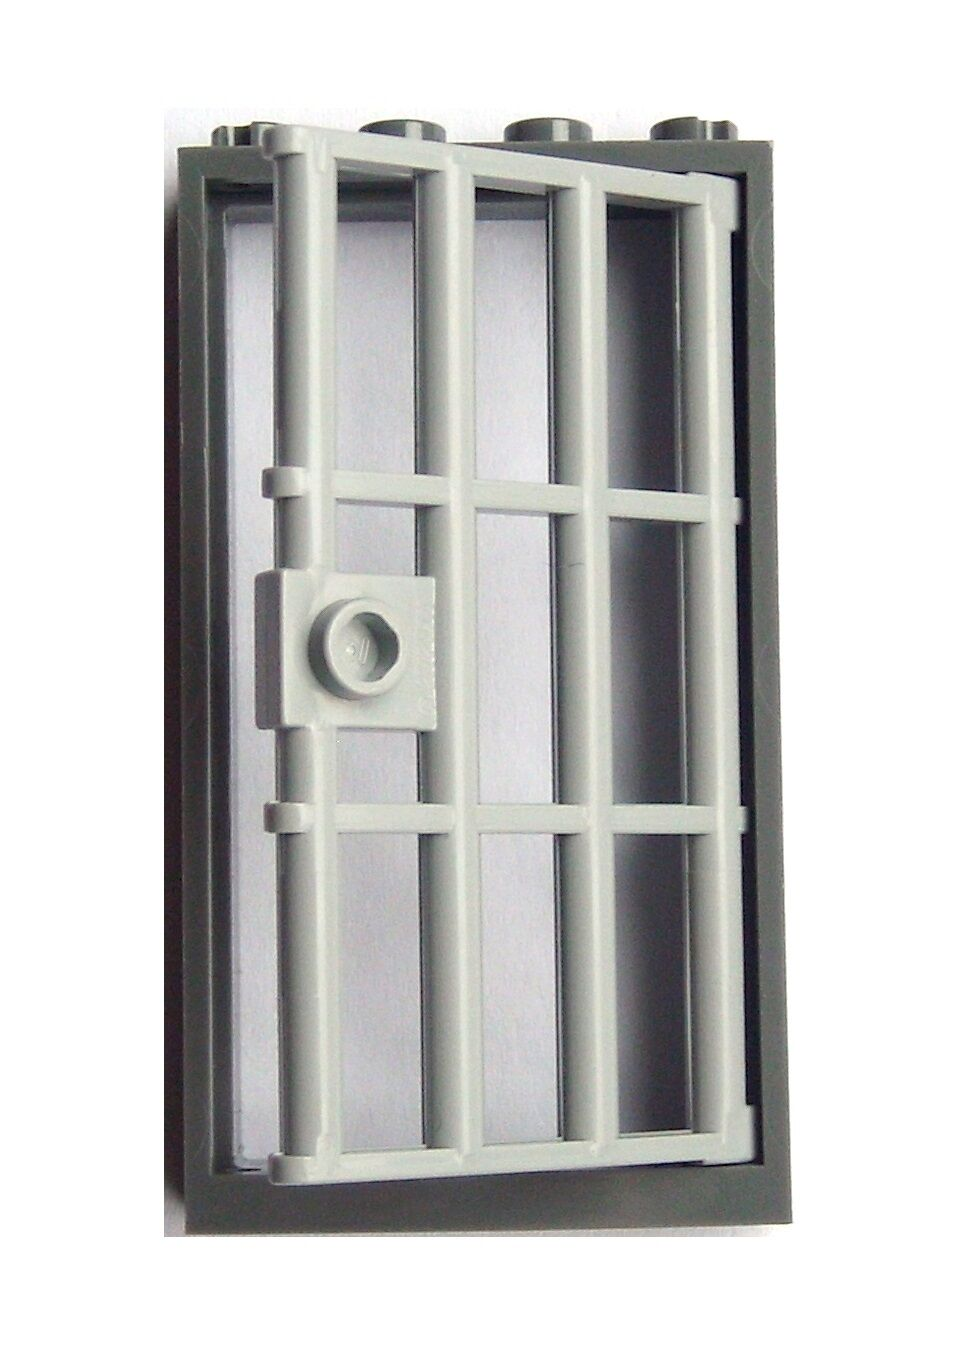 Lego 100 Pieces of Light Grey Door with with with Dark Grey Frame Cellar Prison Doors New ce391d